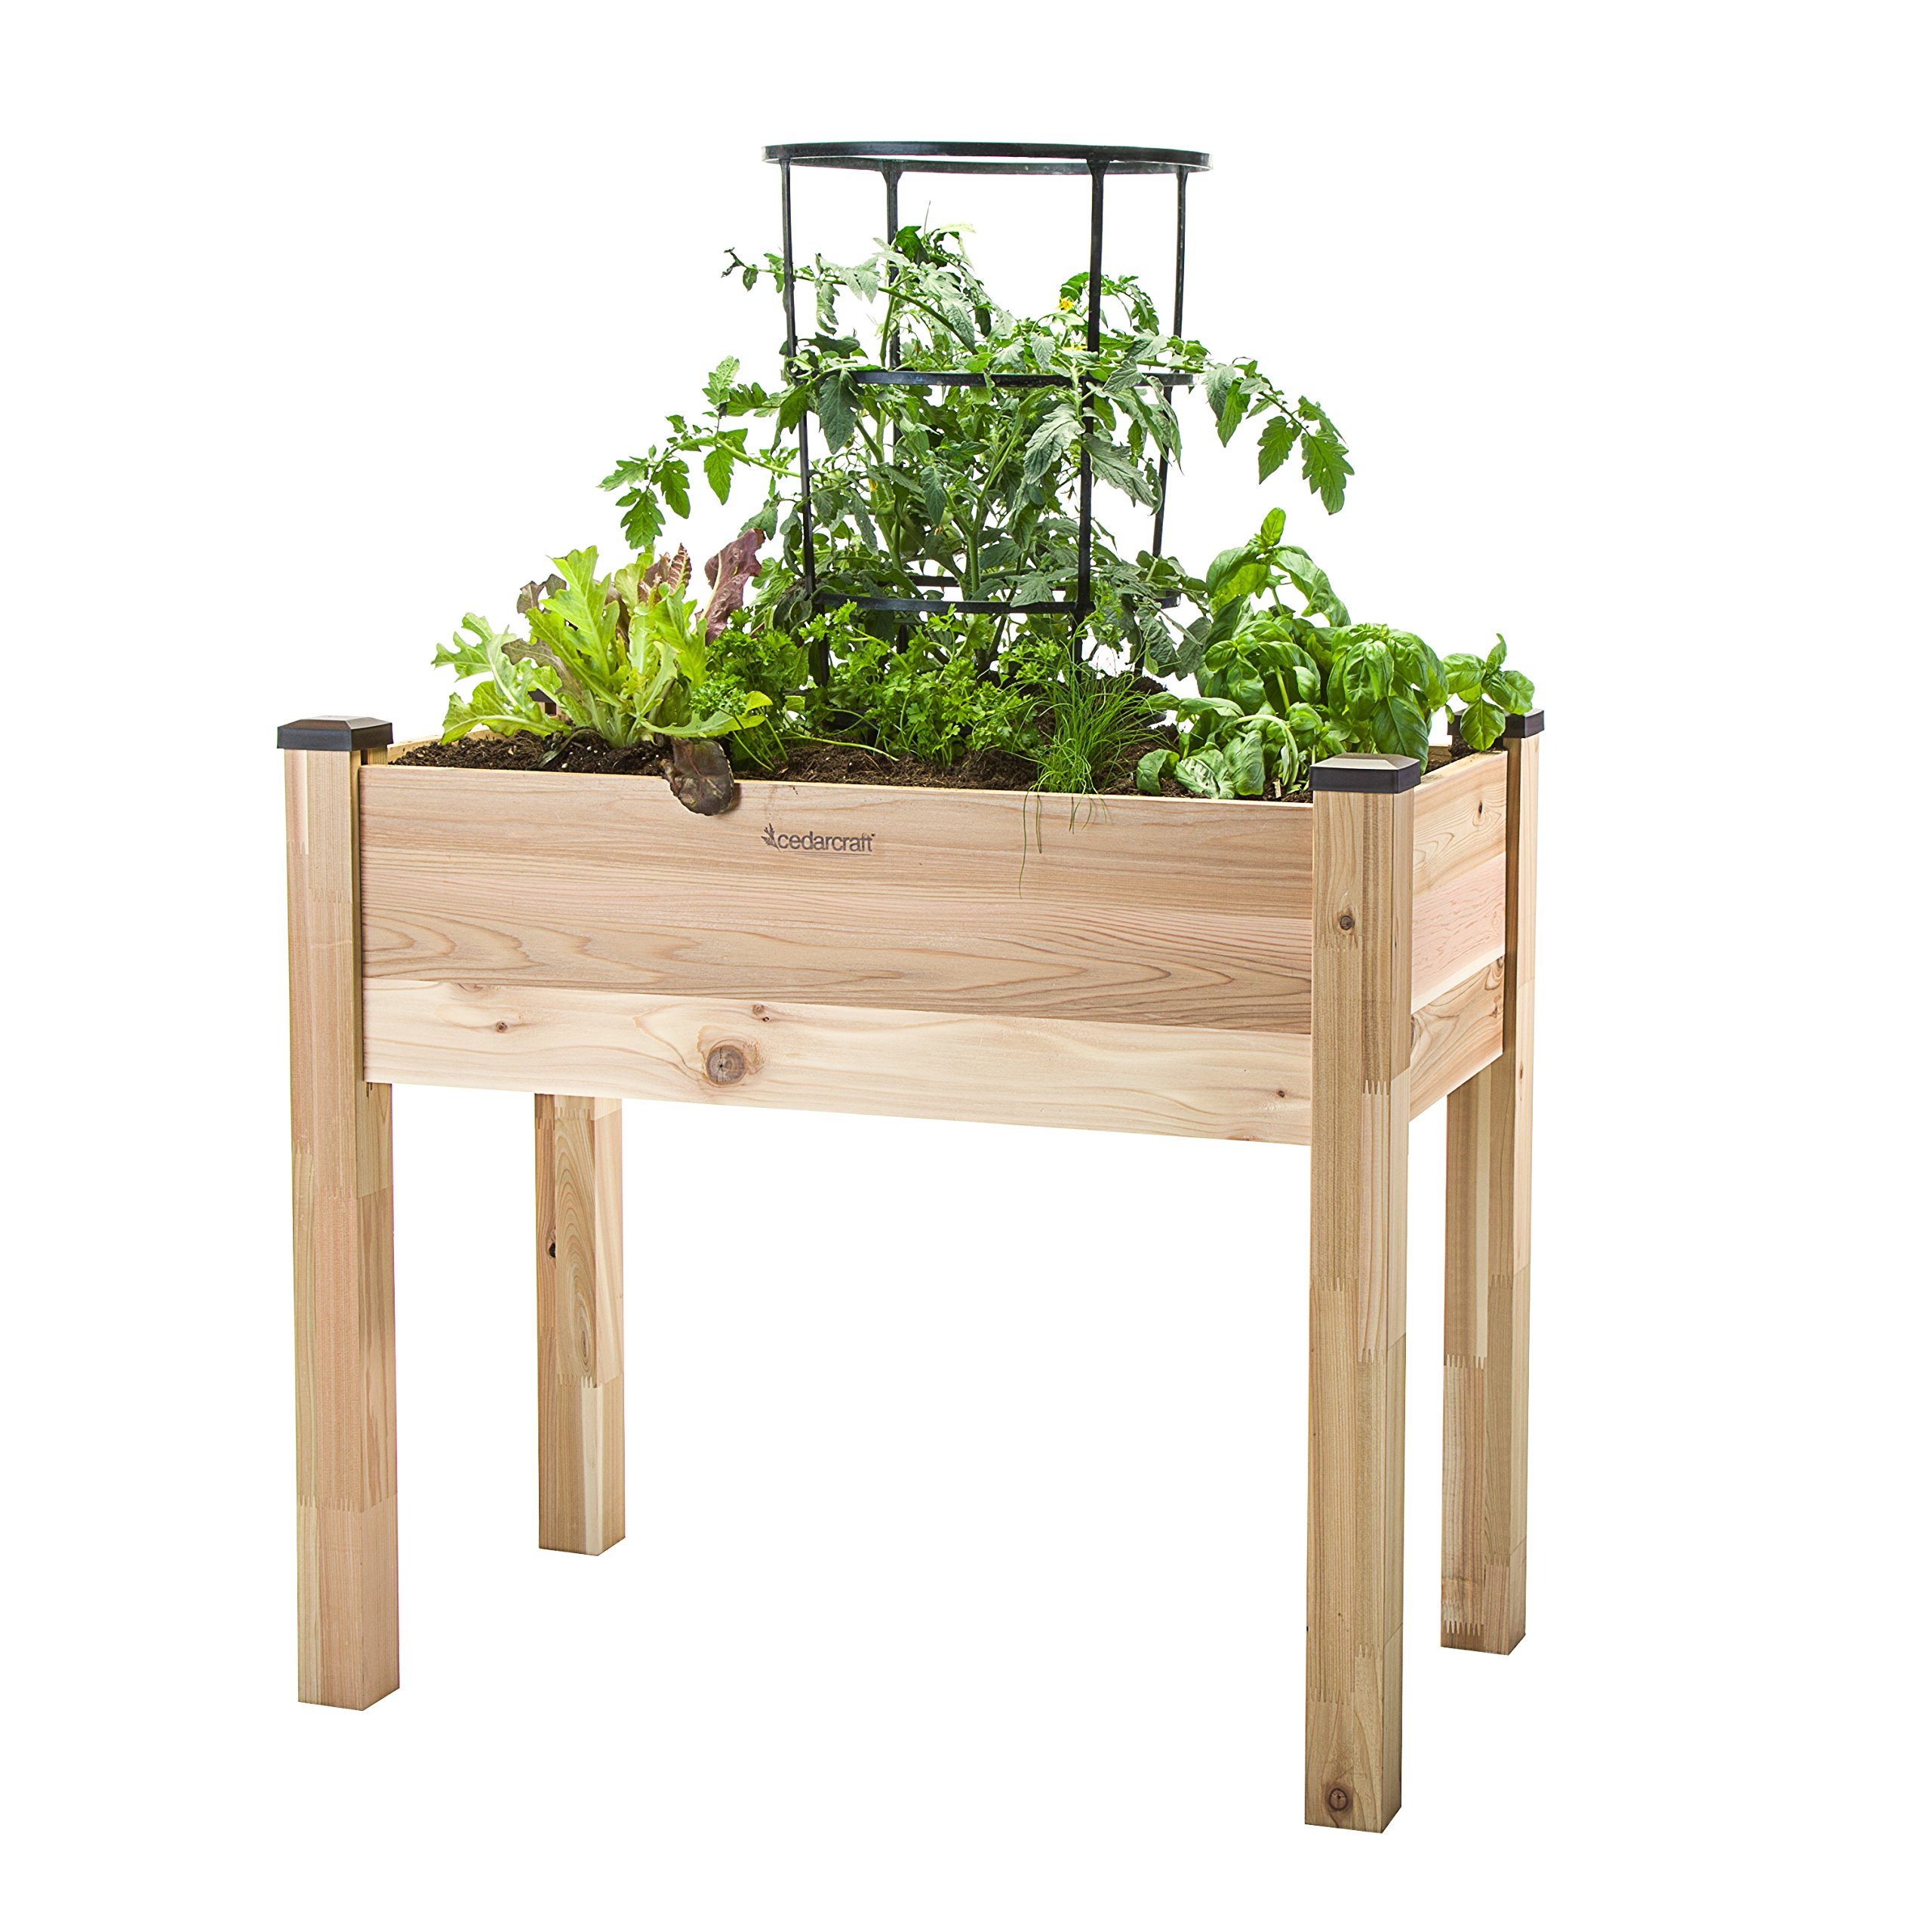 CedarCraft Elevated Garden Planter (18'' X 34'' X 30'')